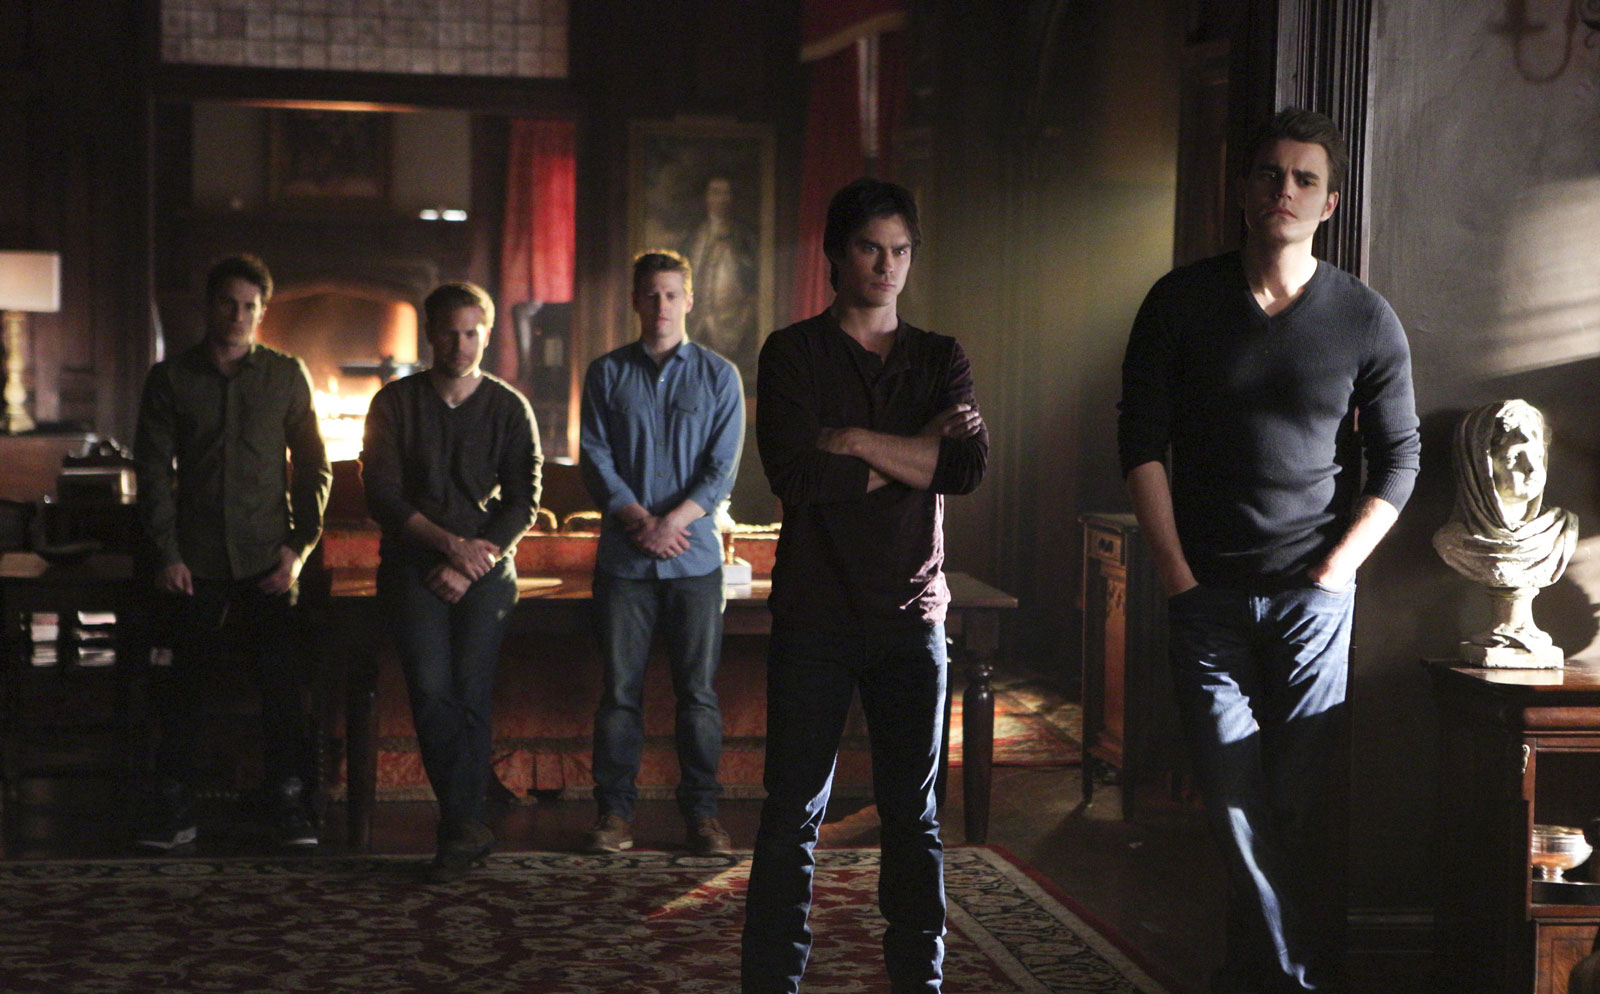 The Vampire Diaries The Originals and Legacies Wiki team makes every effort to maintain professional courtesy and provide sources of information for upcoming episodes